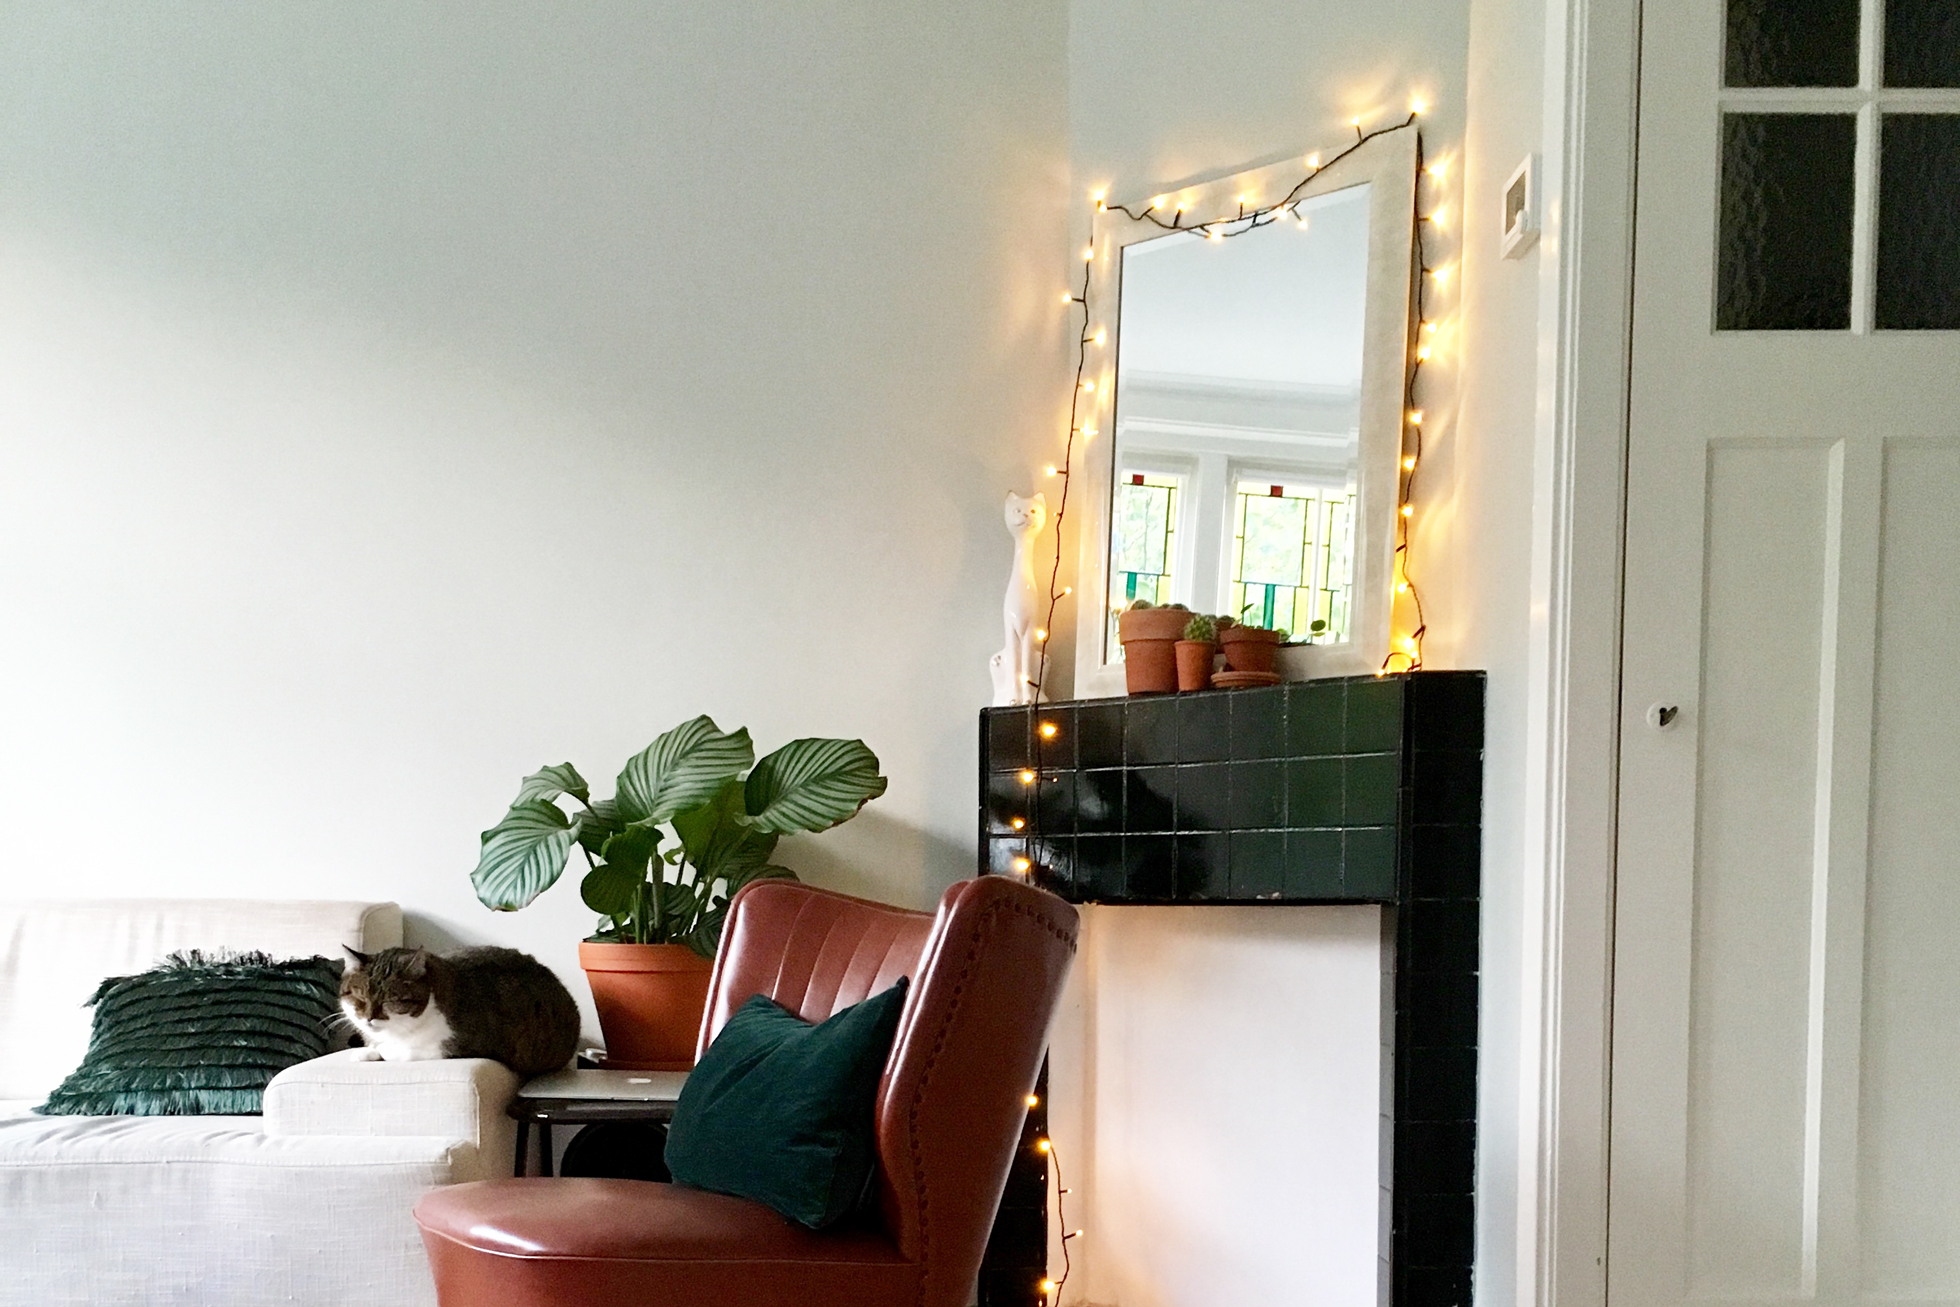 Living room with cat on a couch and string lights on mantel